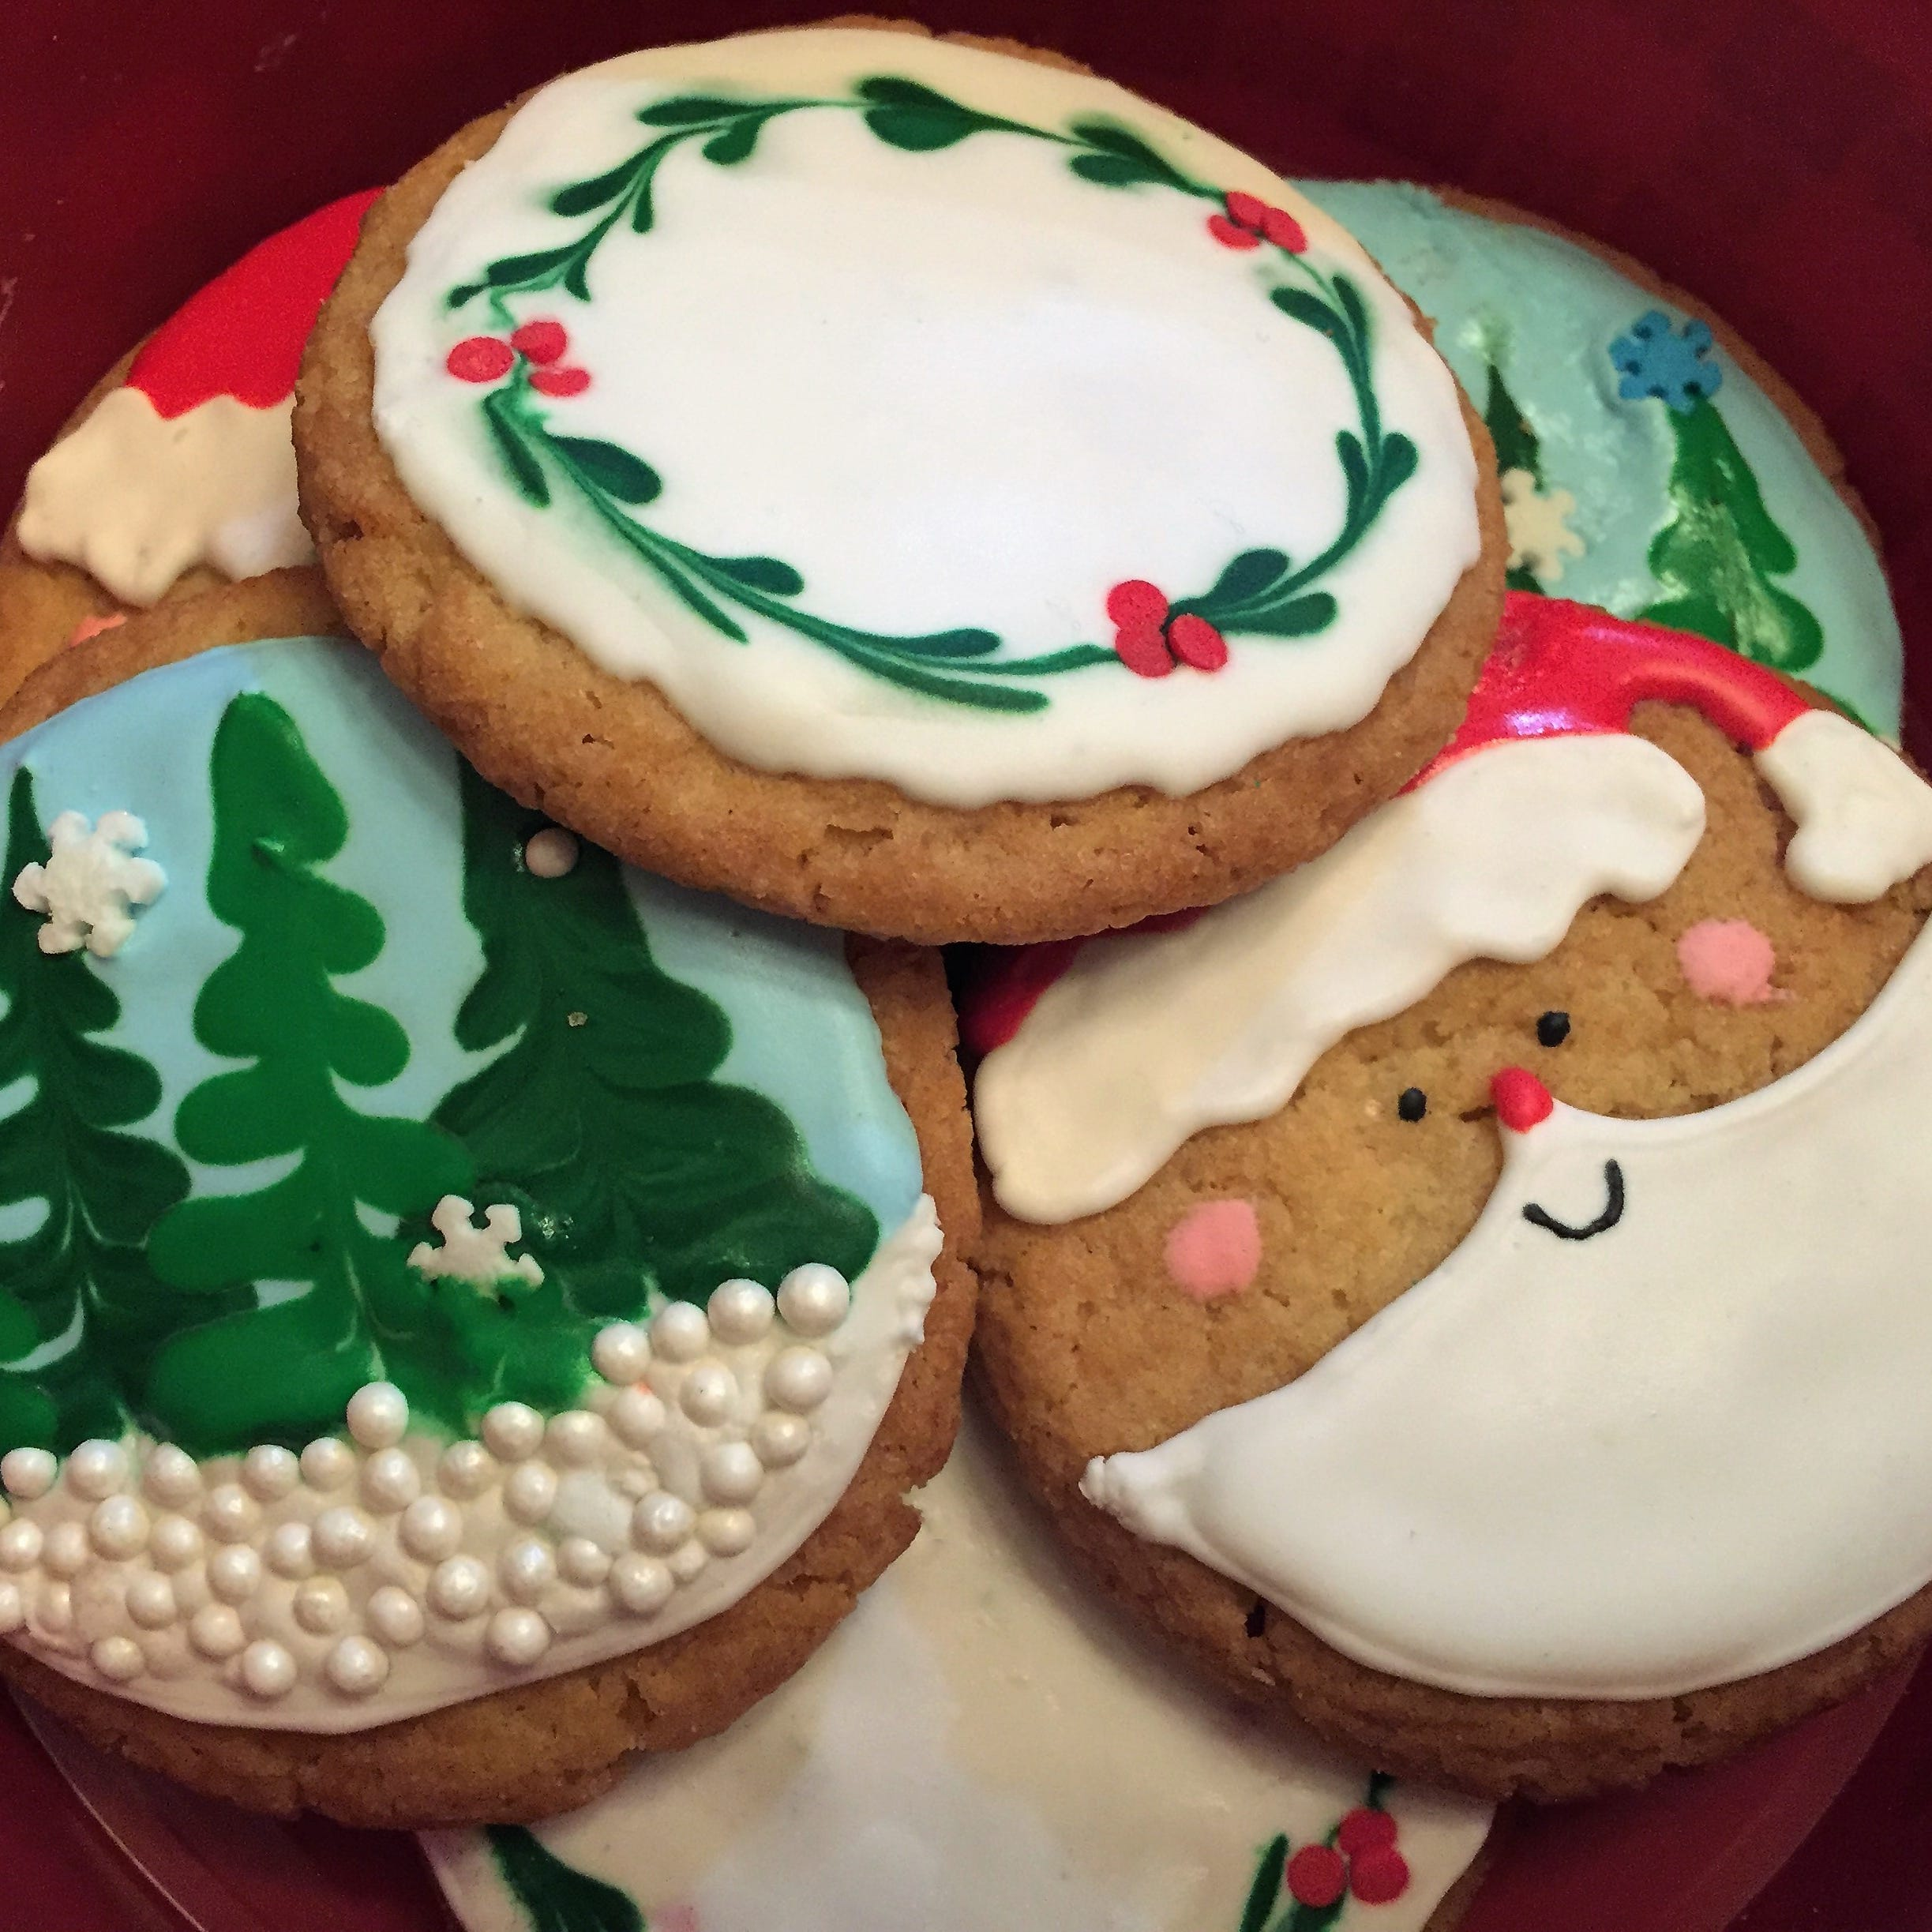 Join us for a holiday cookie decorating workshop